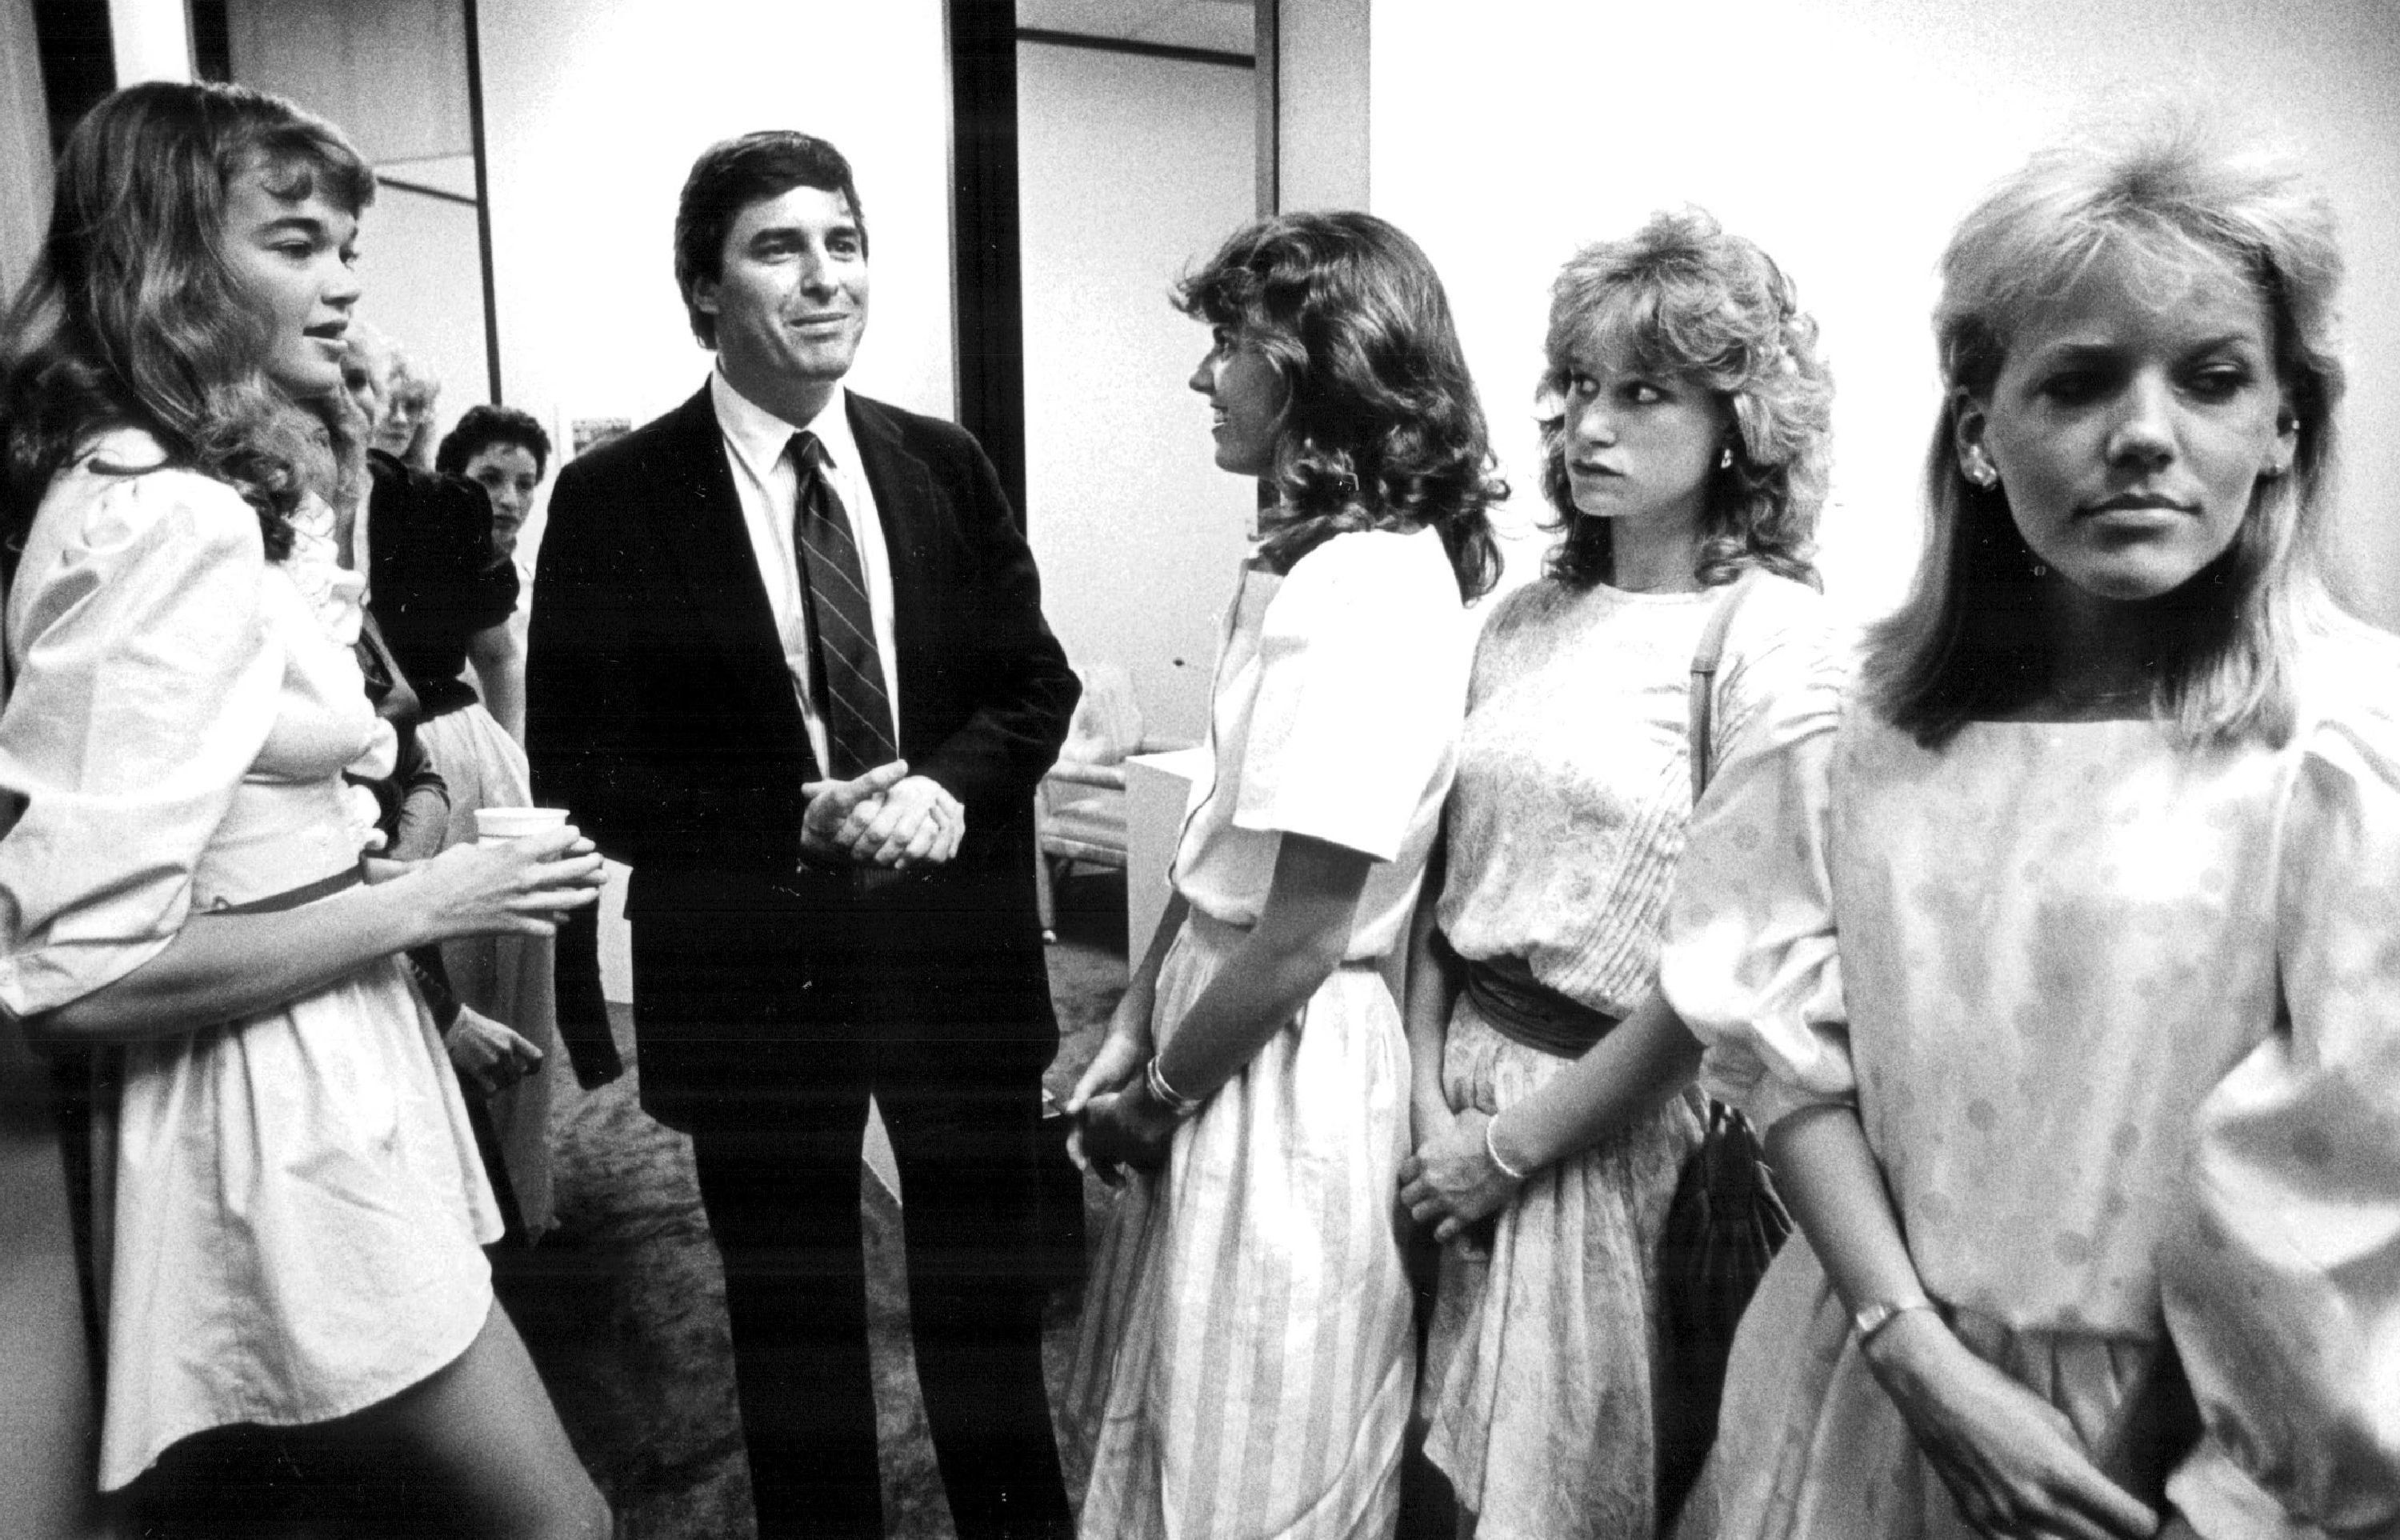 JUN 10 1983 Potential models wait out in the hall way to John Casablancas office in south Aurora. John is center. Credit: The Denver Post (Denver Post via Getty Images)